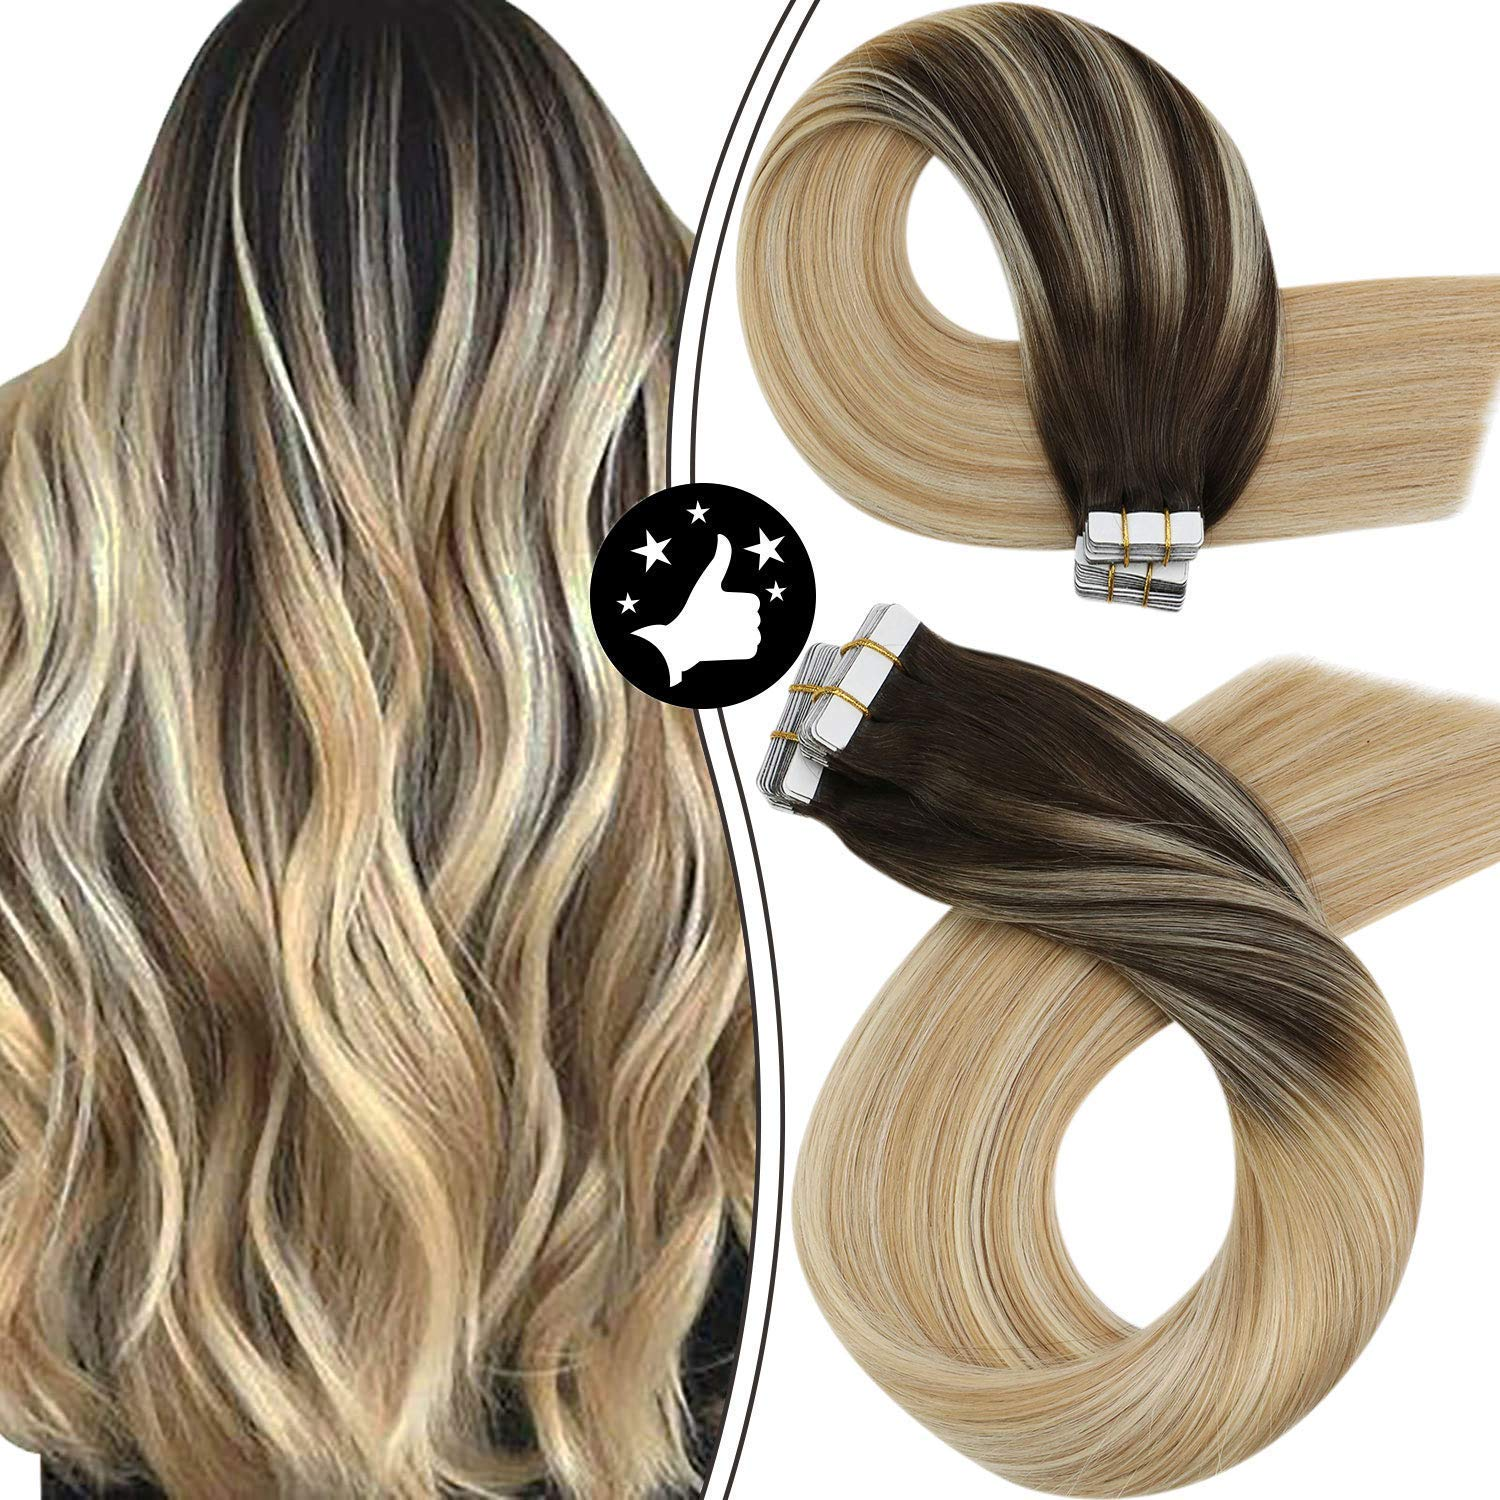 Moresoo Sacramento Mall Ombre Tape in Financial sales sale Hair 22 Balayage E Extensions Inch